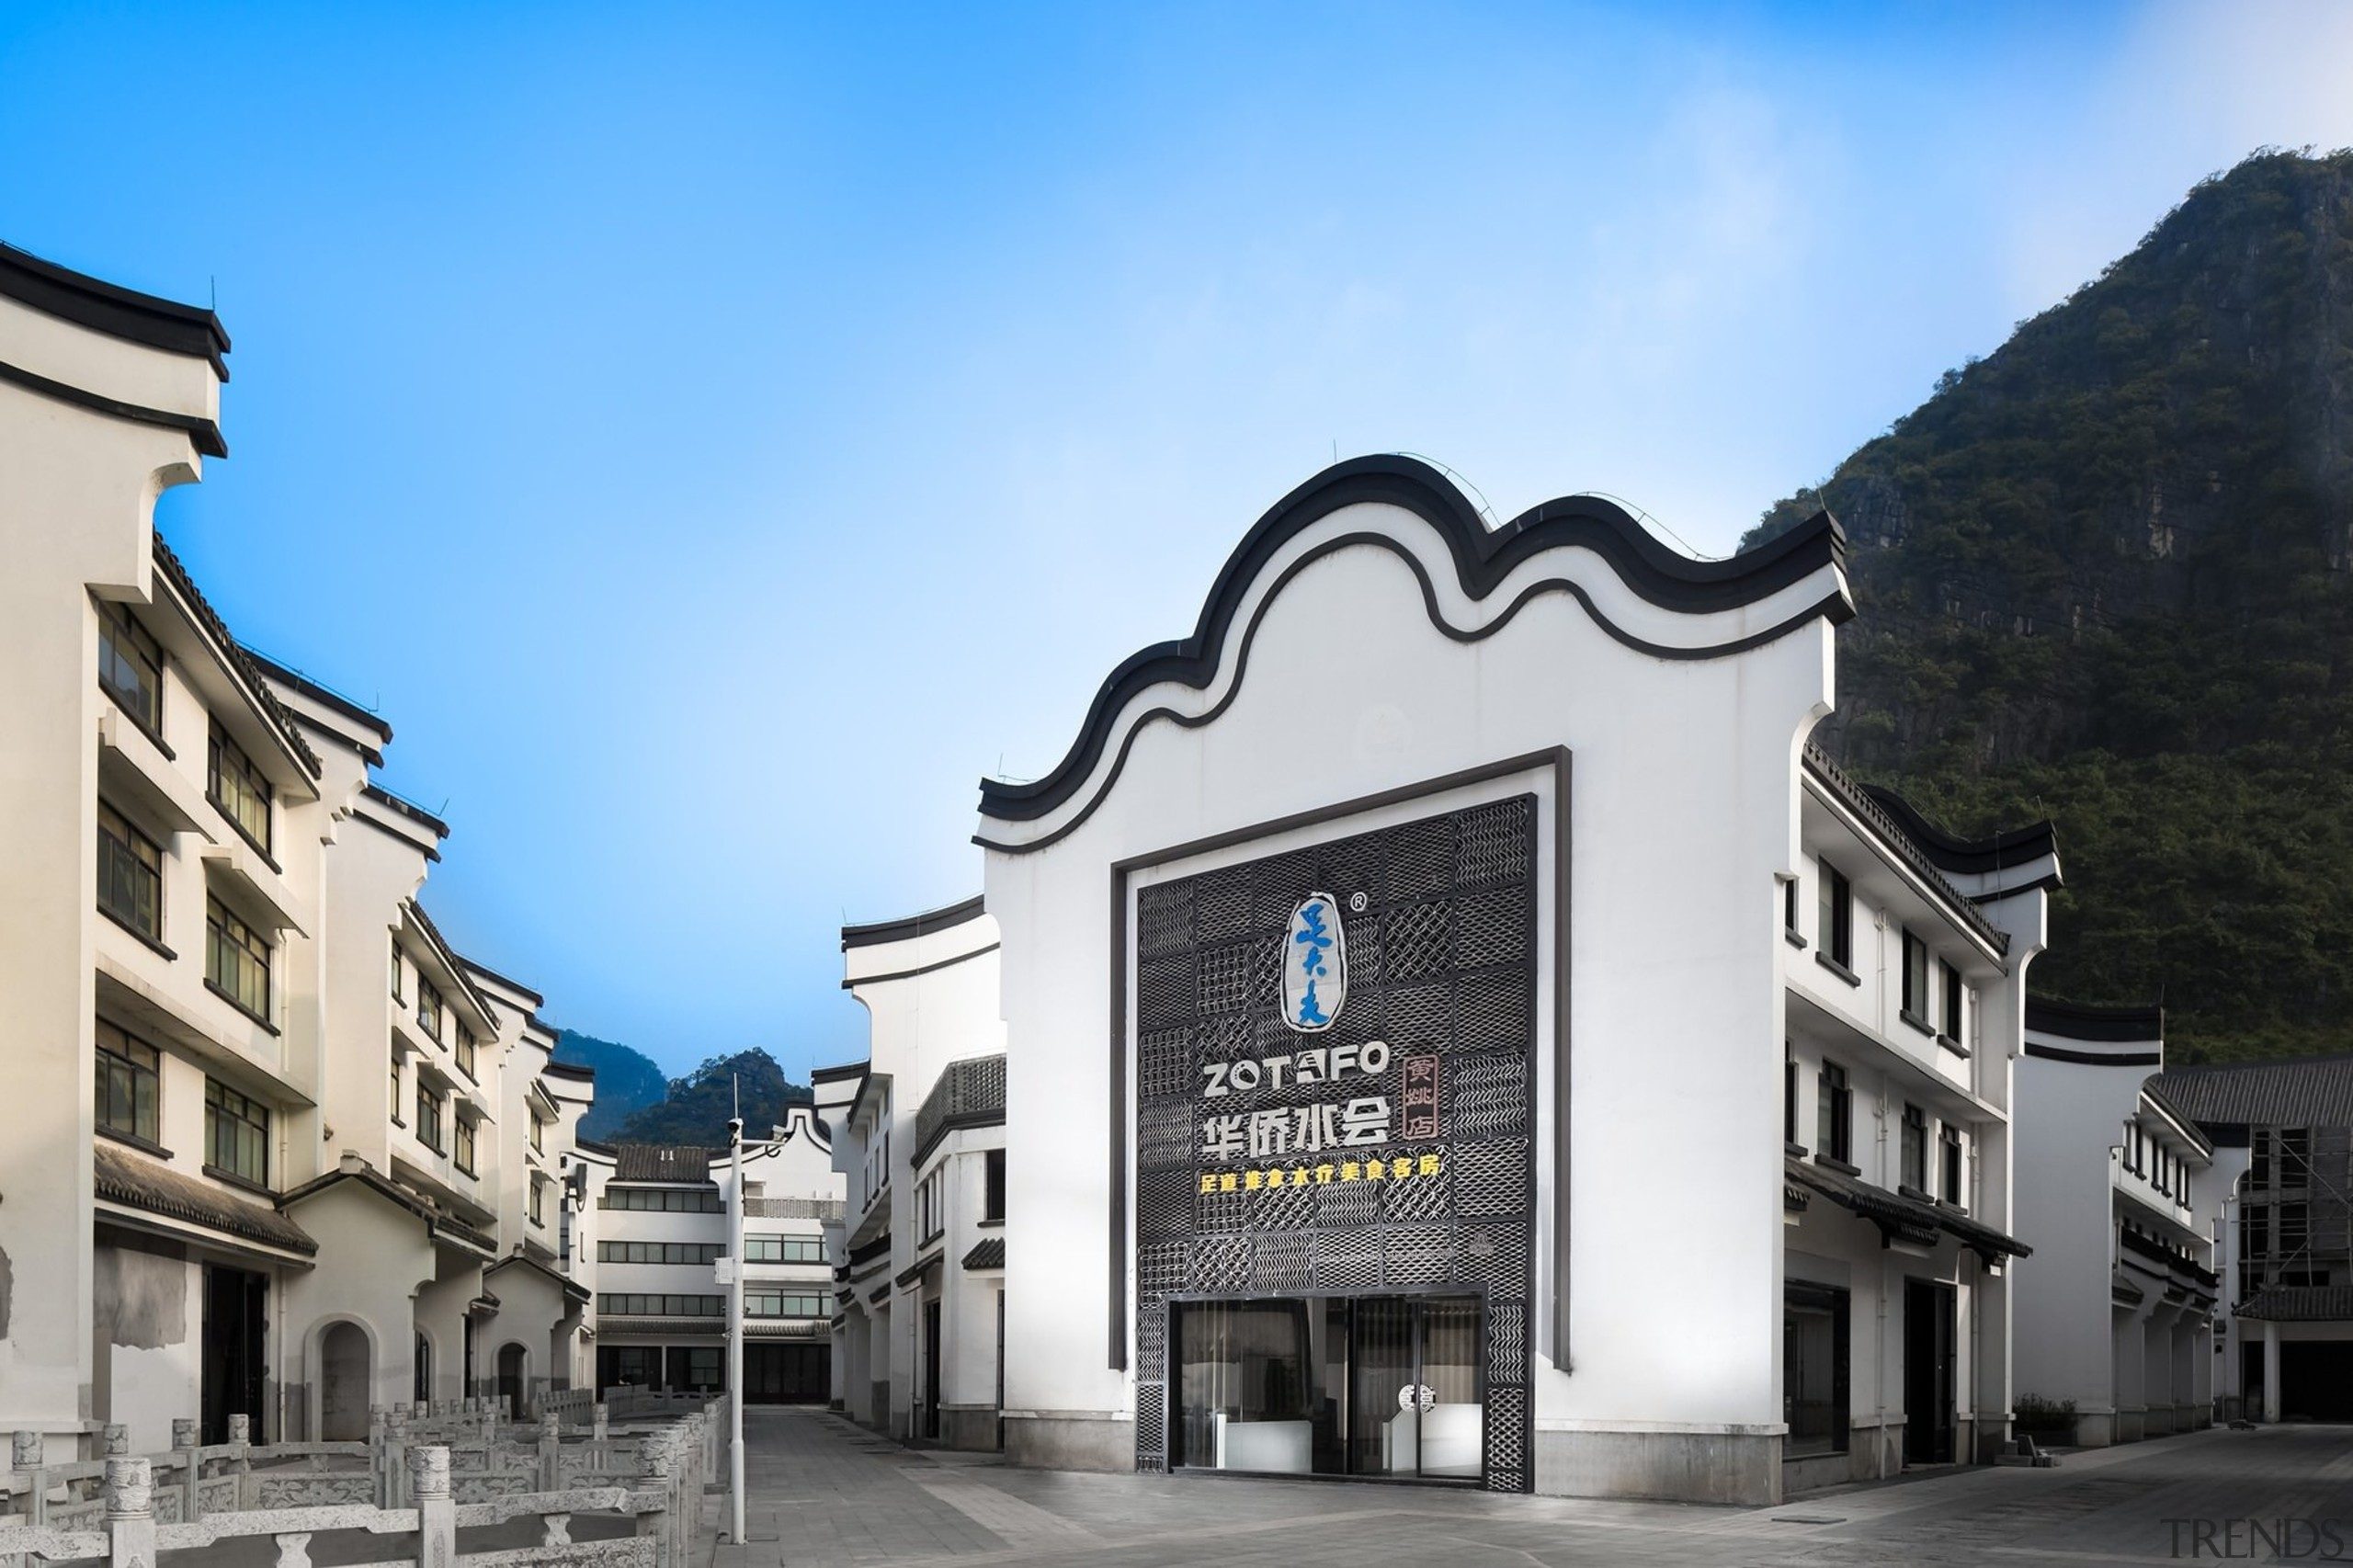 A traditional facade with contemporary elements - A architecture, building, commercial building, facade, mixed use, real estate, teal, black